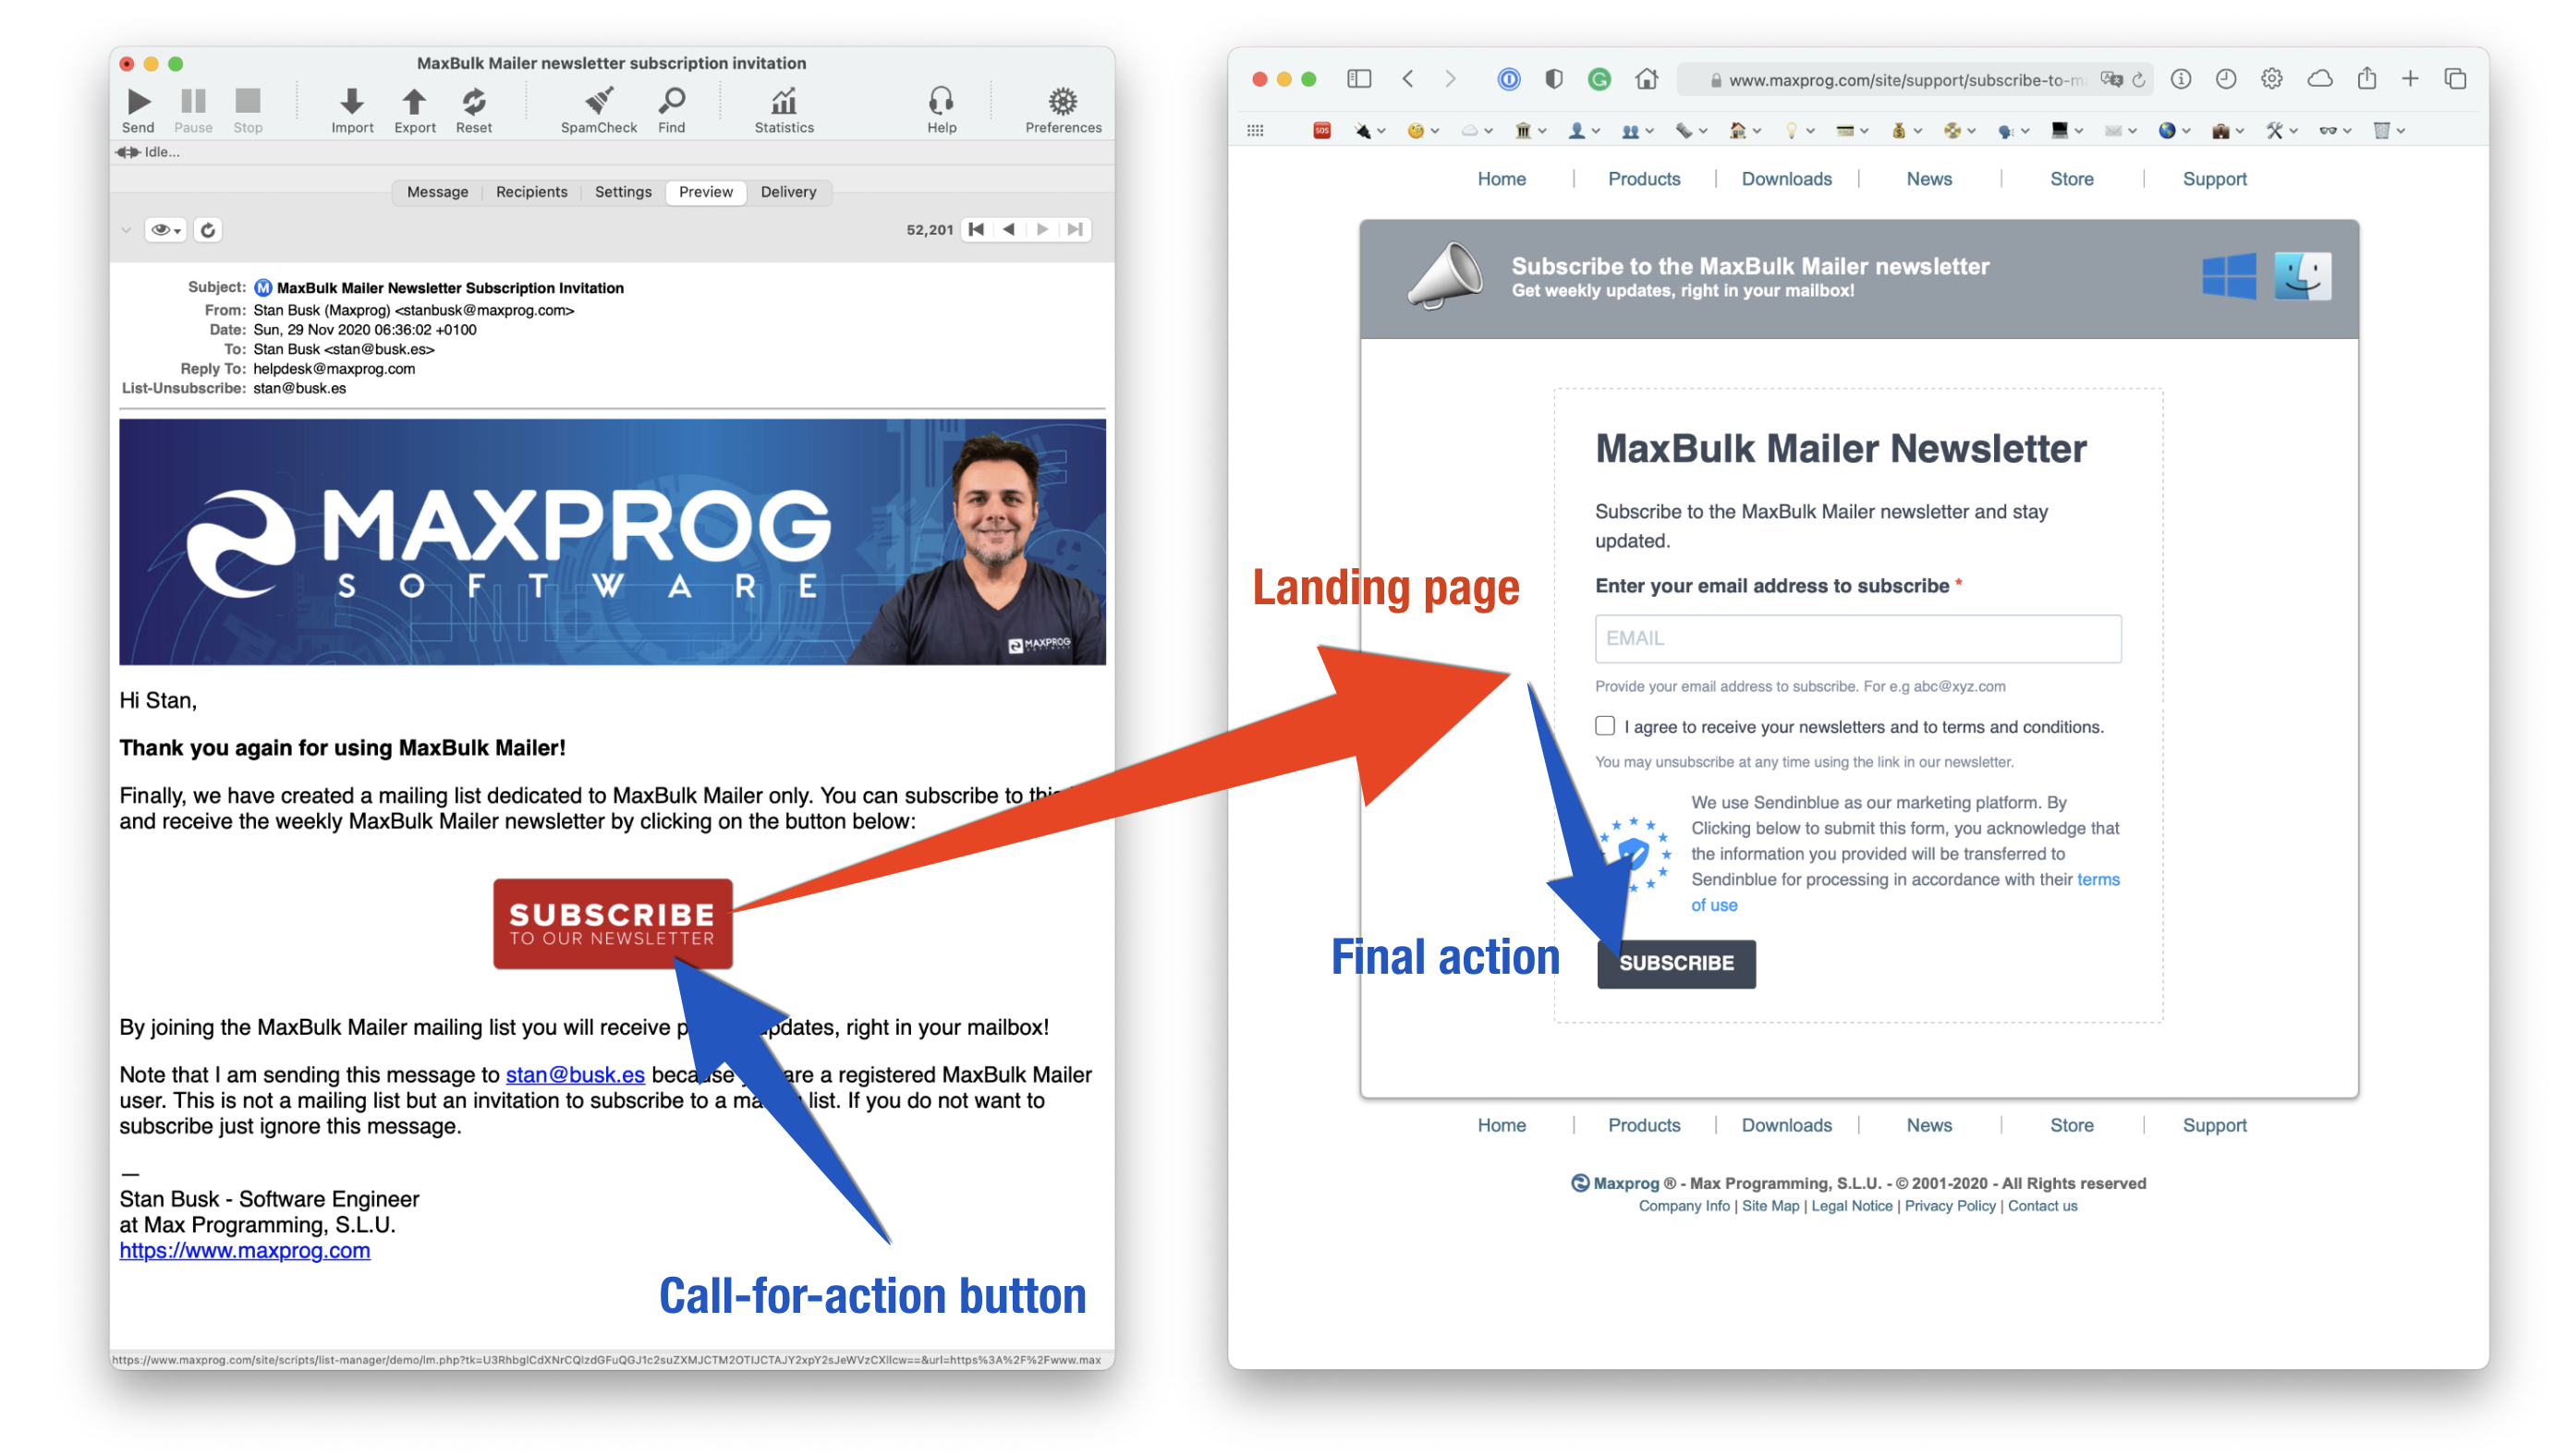 Landing page and call-for-action button